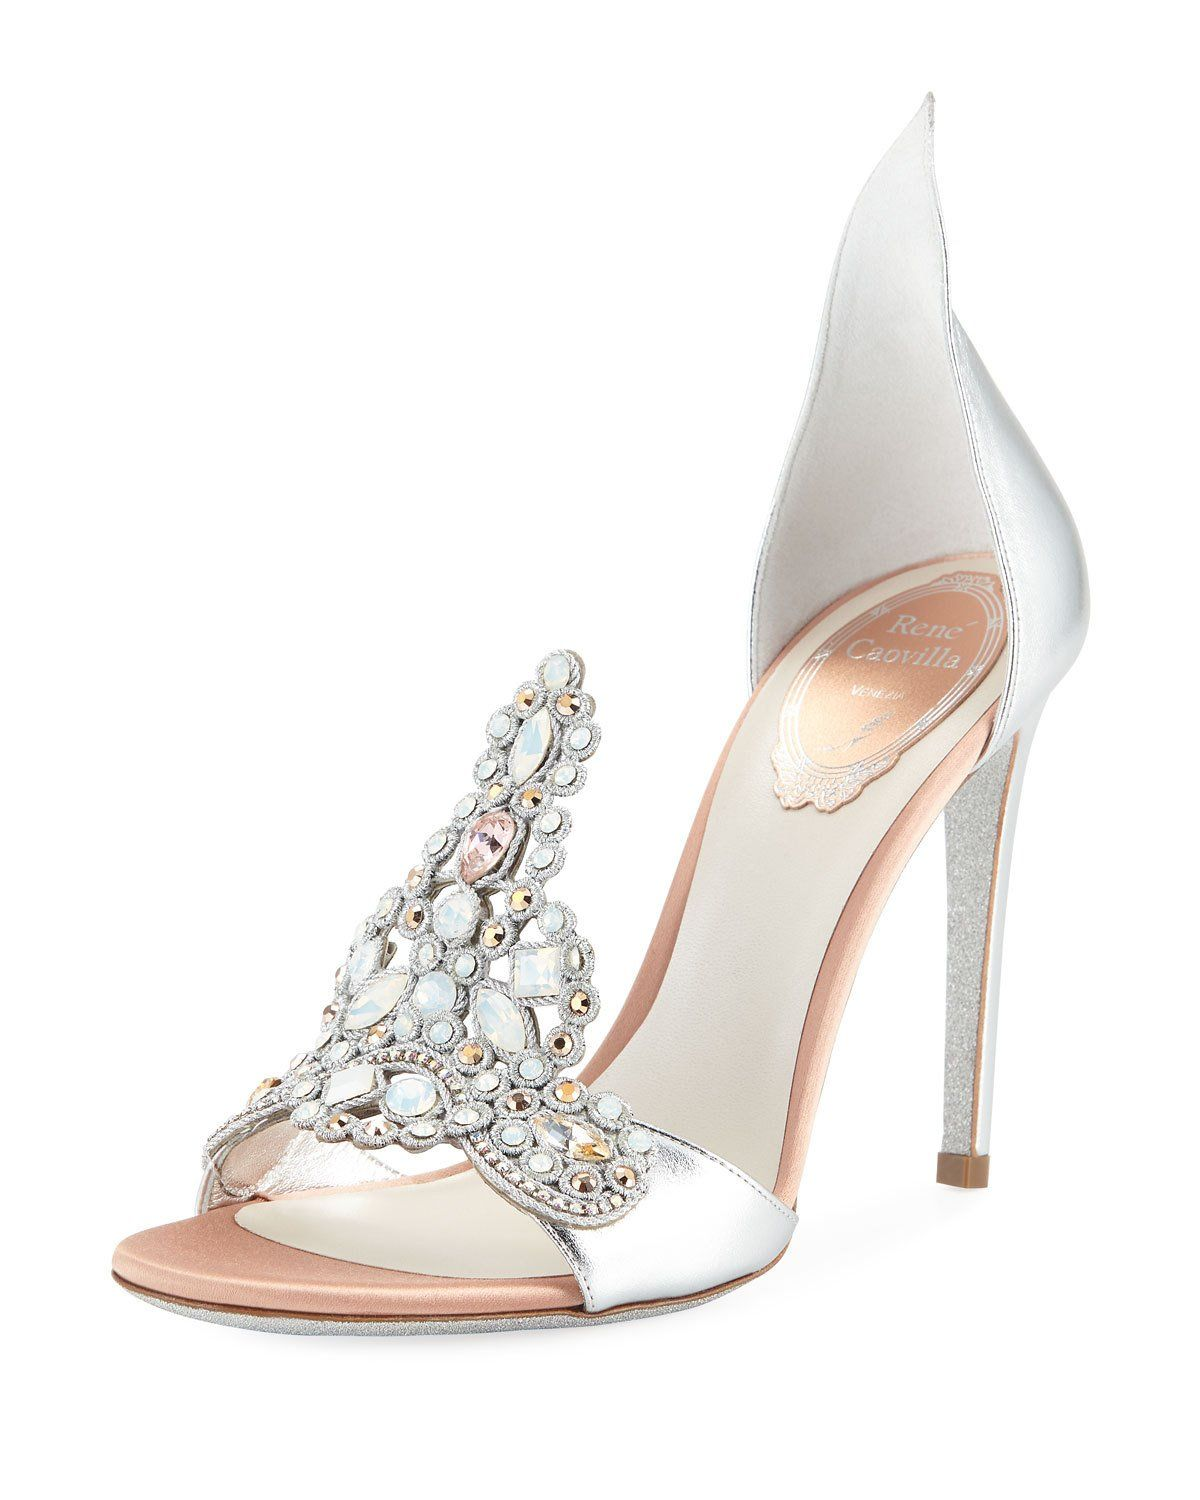 722308086efd4  1185 Embroidered Crystal Metallic Pumps.  1185 Embroidered Crystal  Metallic Pumps Designer Shoes Heels